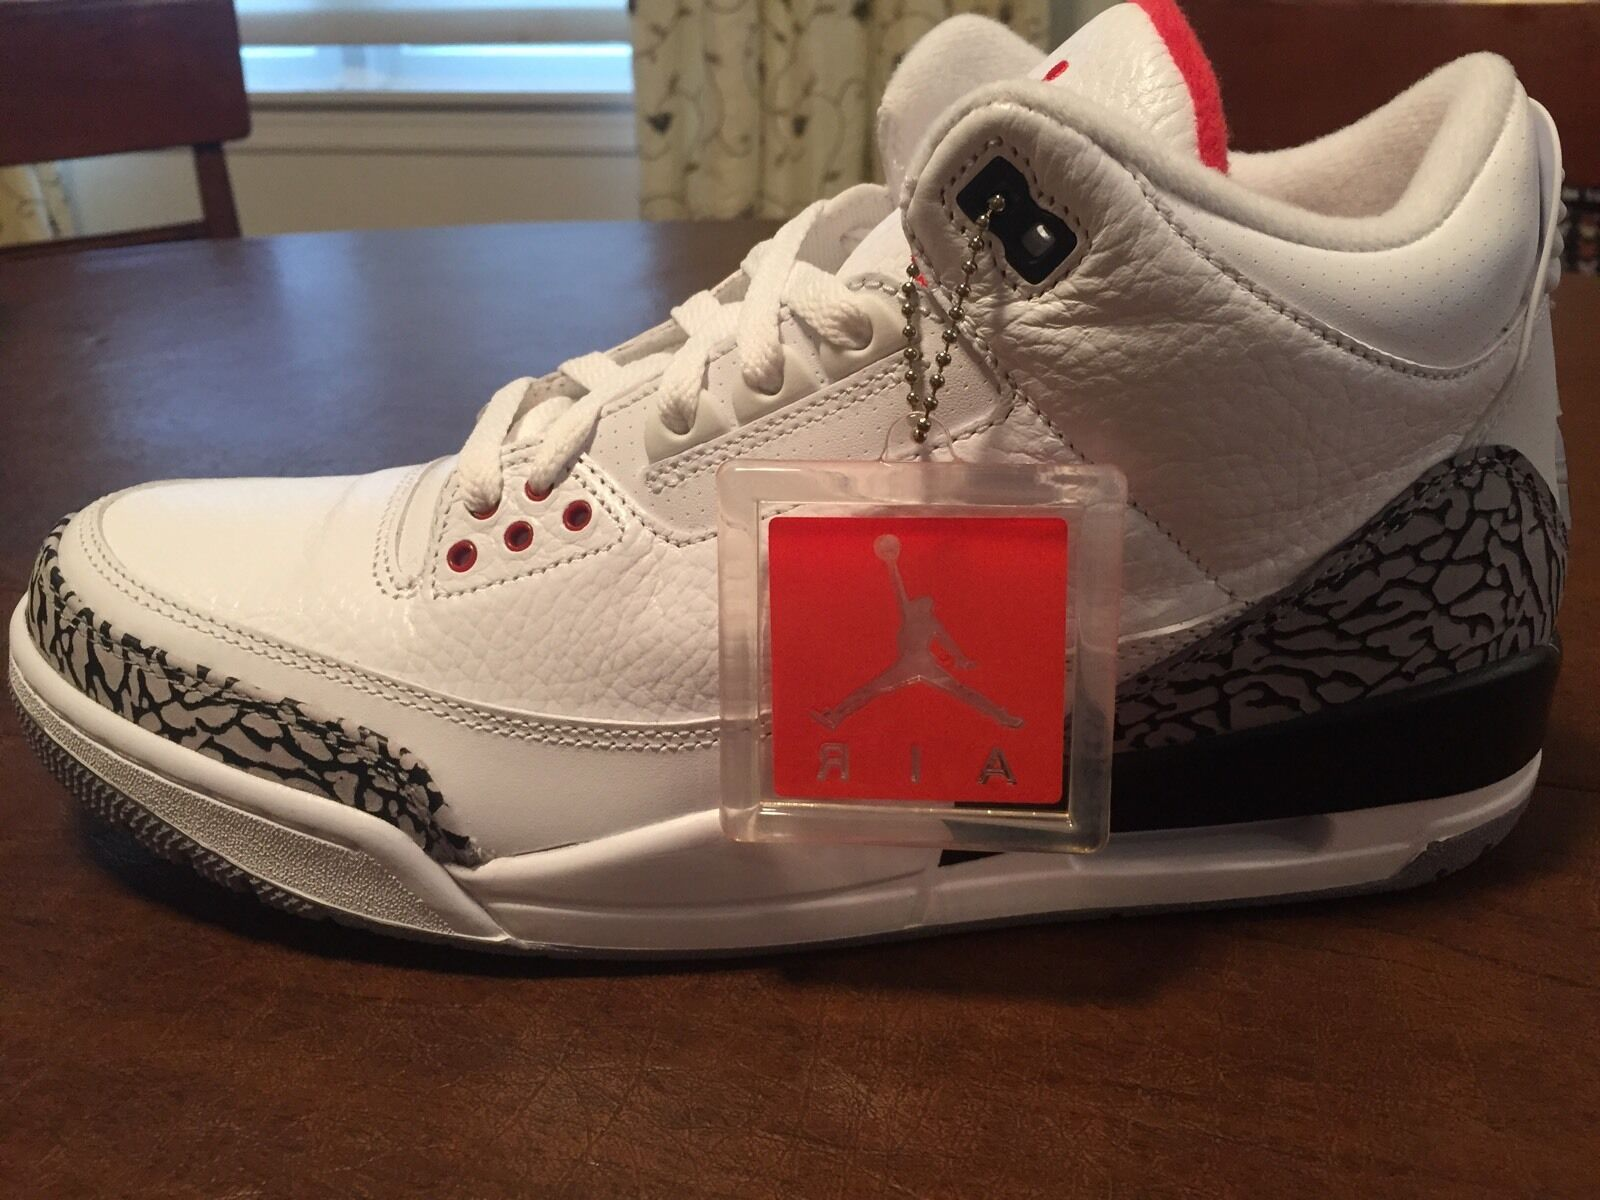 Nike Air Jordan Retro III 3 White Cement 2011 DEADSTOCK Size 11